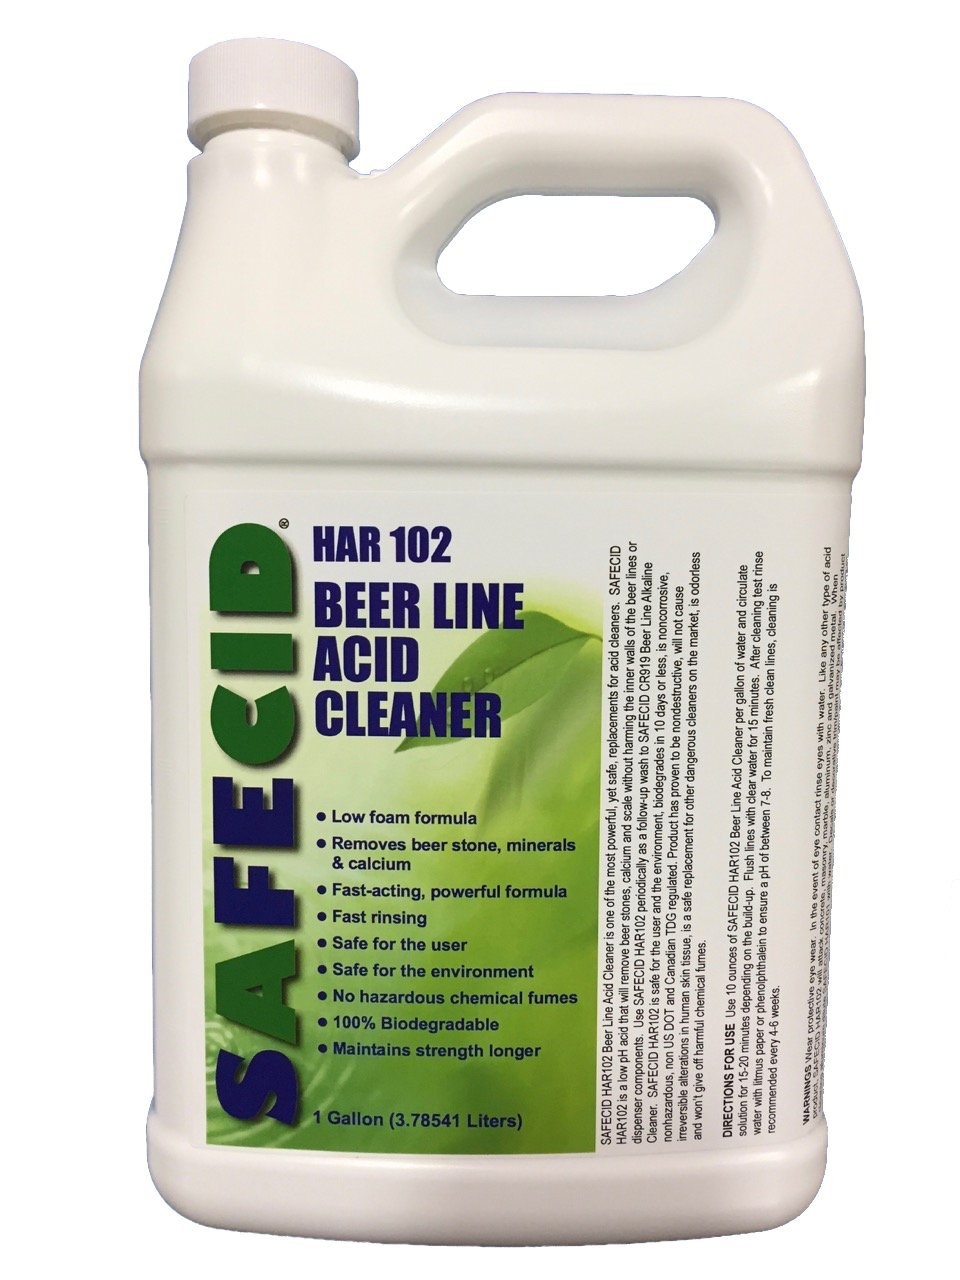 Beer Line Acid Cleaner Gallon by SAFECID (Image #1)